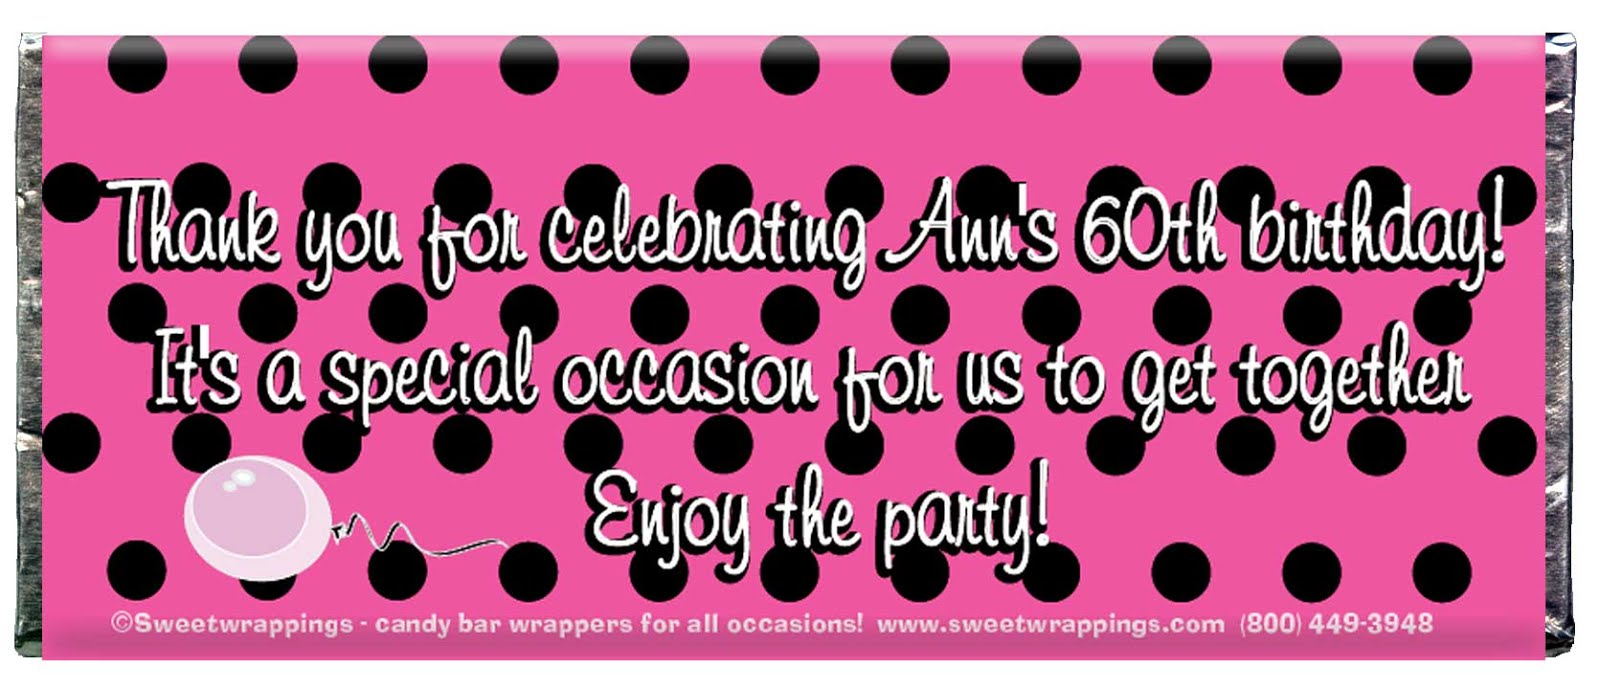 Personalized Candy Wrappers and Party Favors by Sweet Wrappings